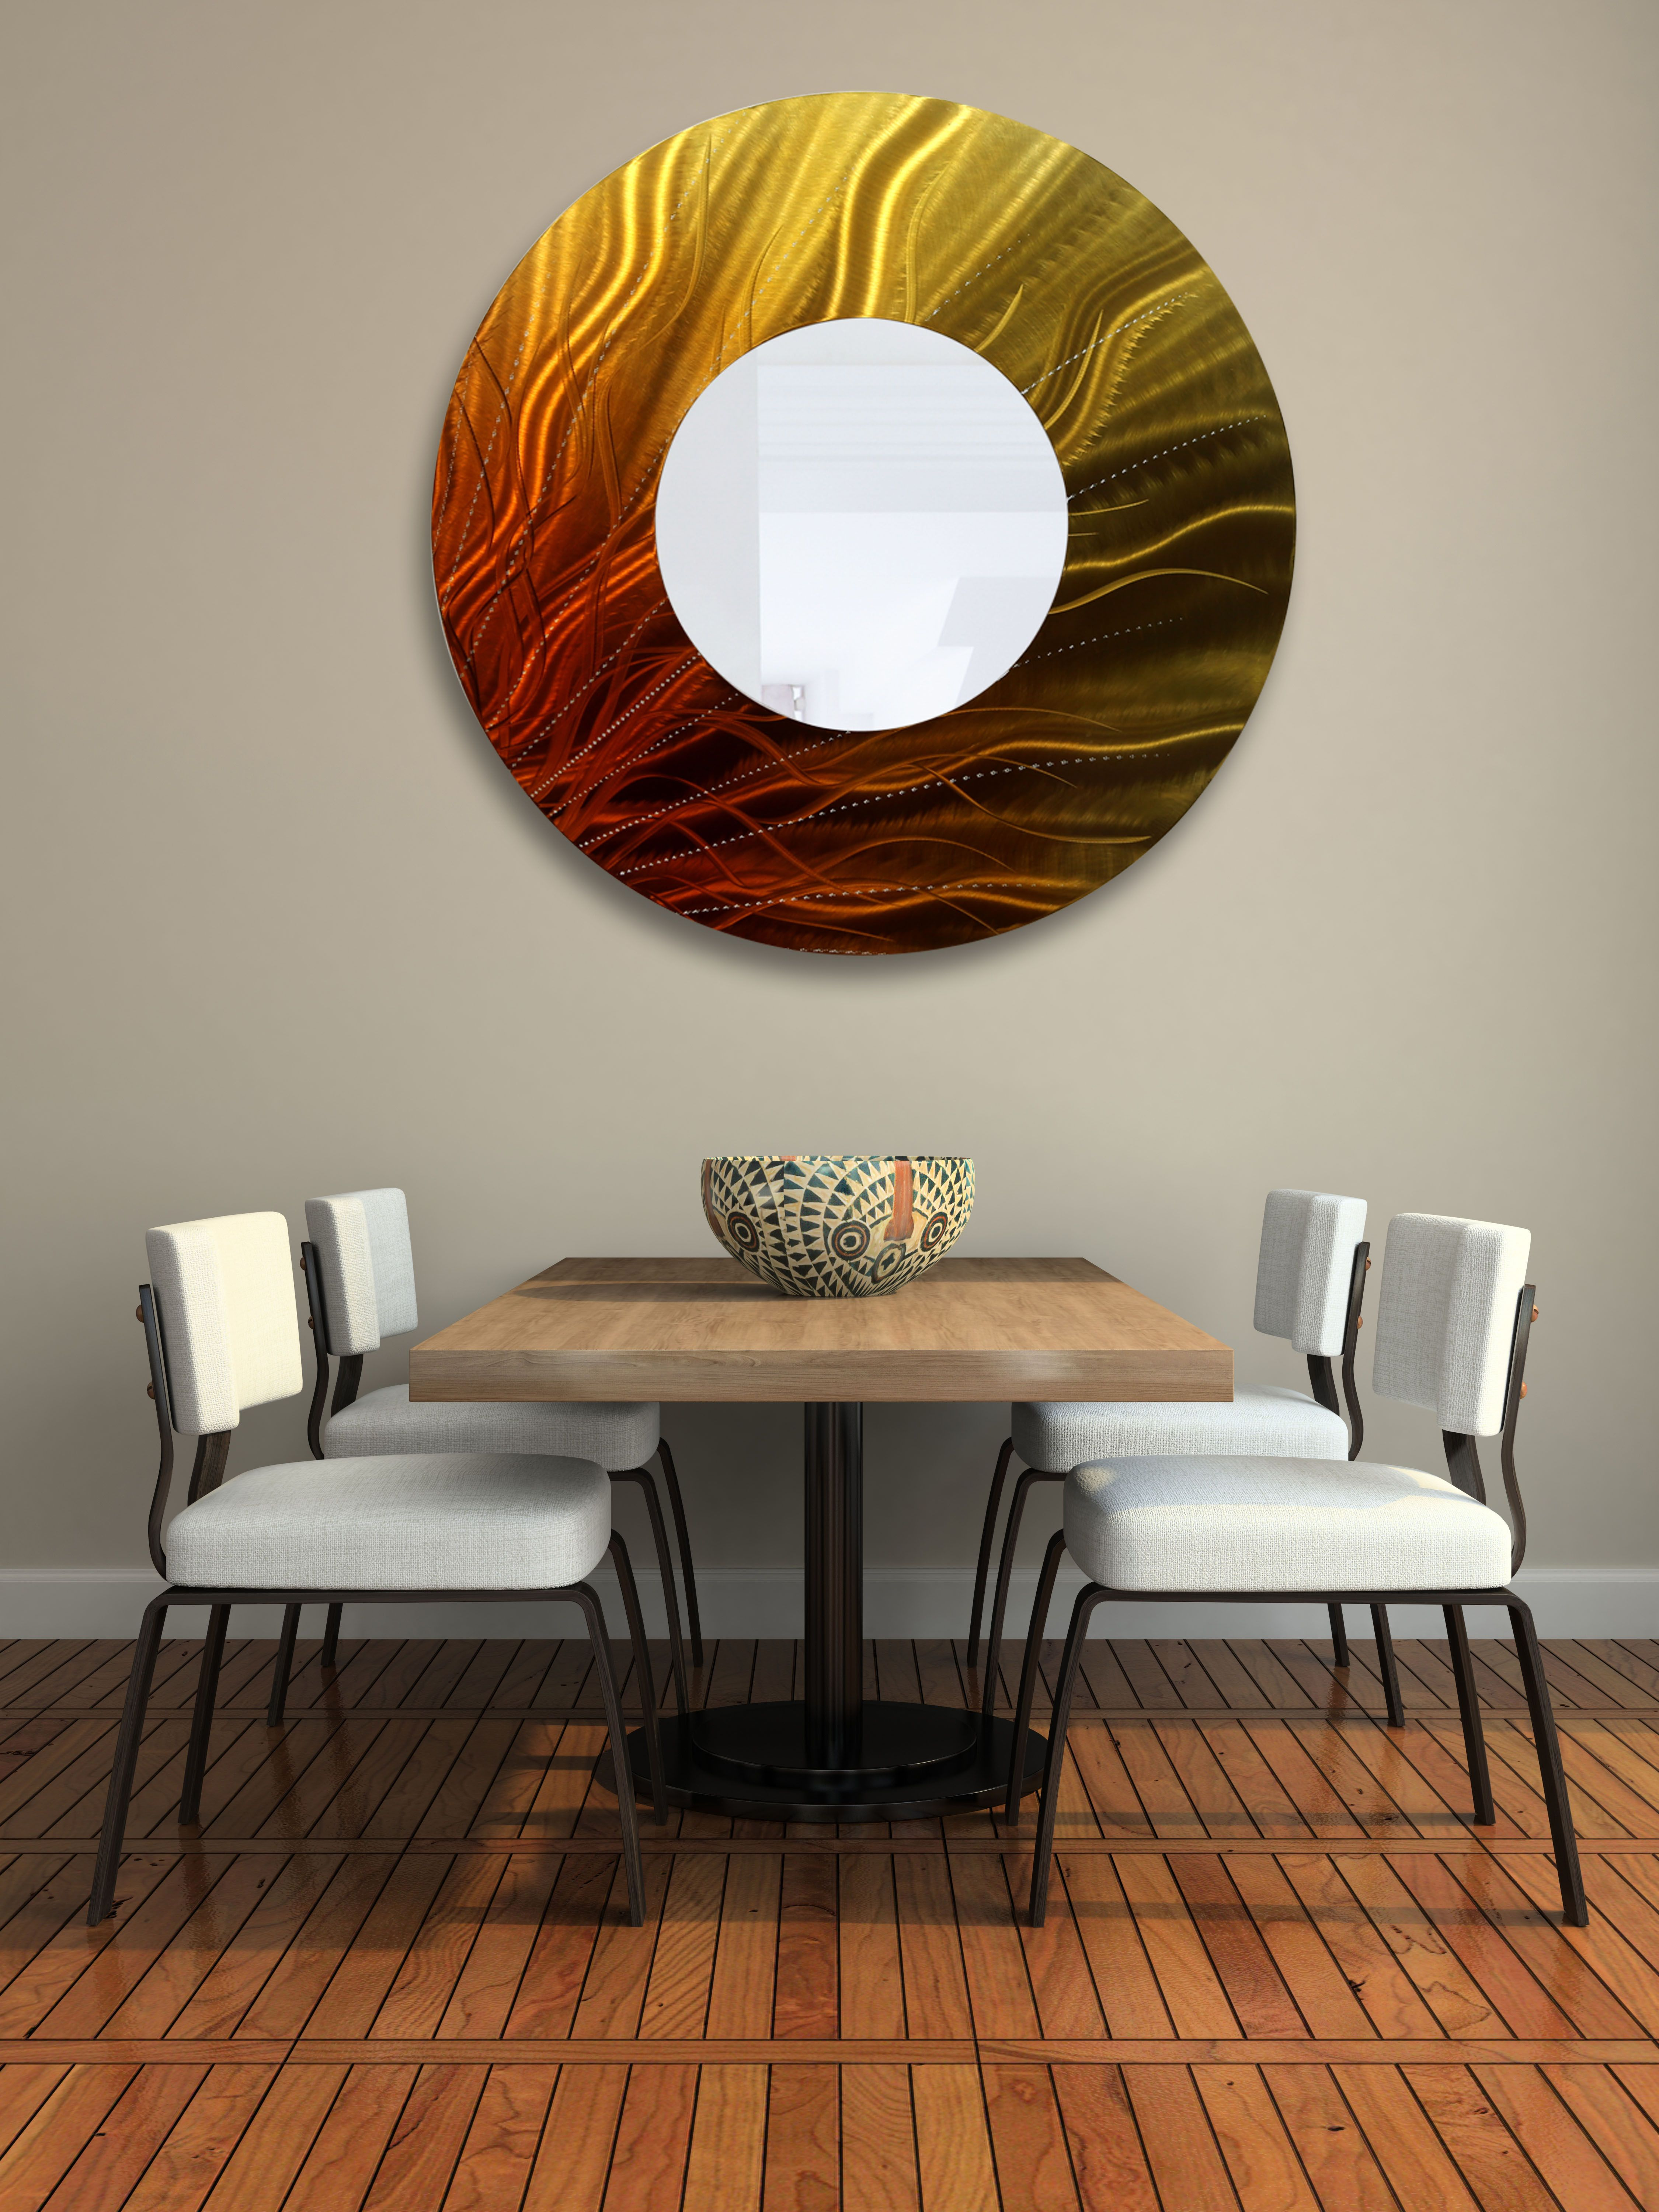 Gold orange and brown abstract metal wall art mirror accent by gold orange and brown abstract metal wall art mirror accent by jon allen metal amipublicfo Gallery